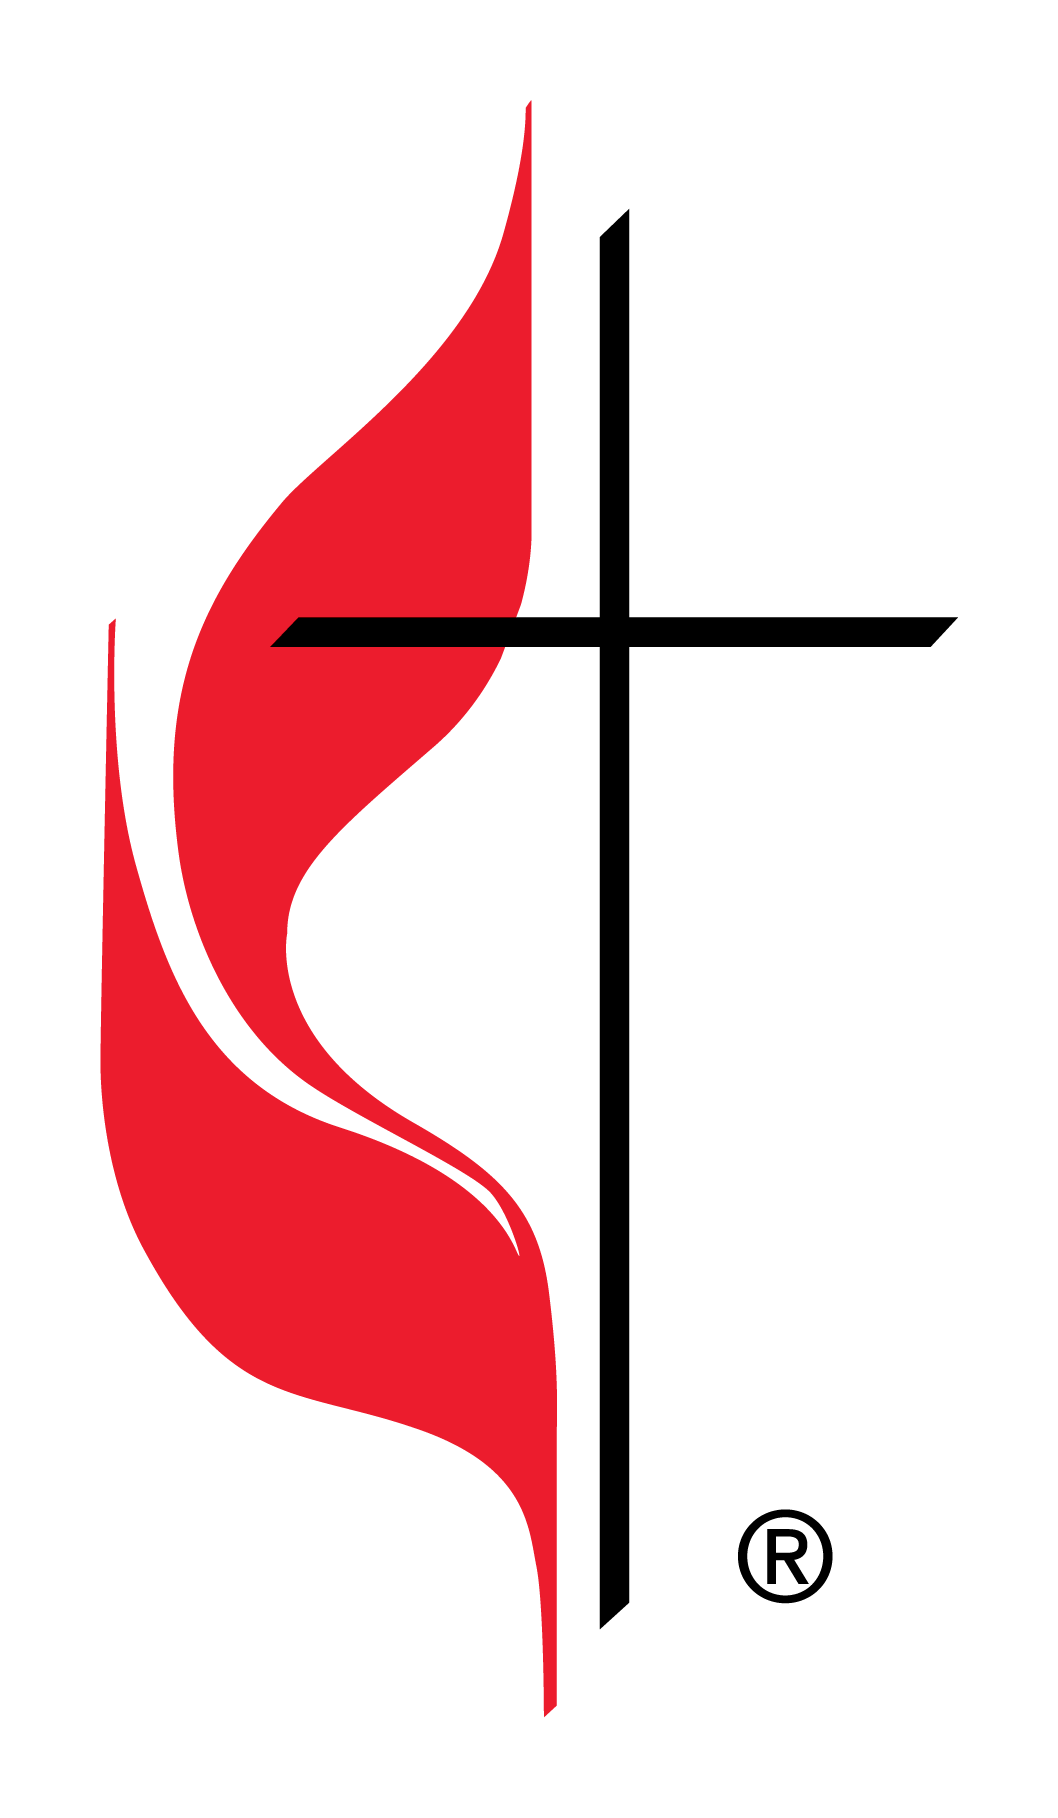 official cross and flame logo of the united methodist church rh pinterest com  free methodist cross and flame clipart